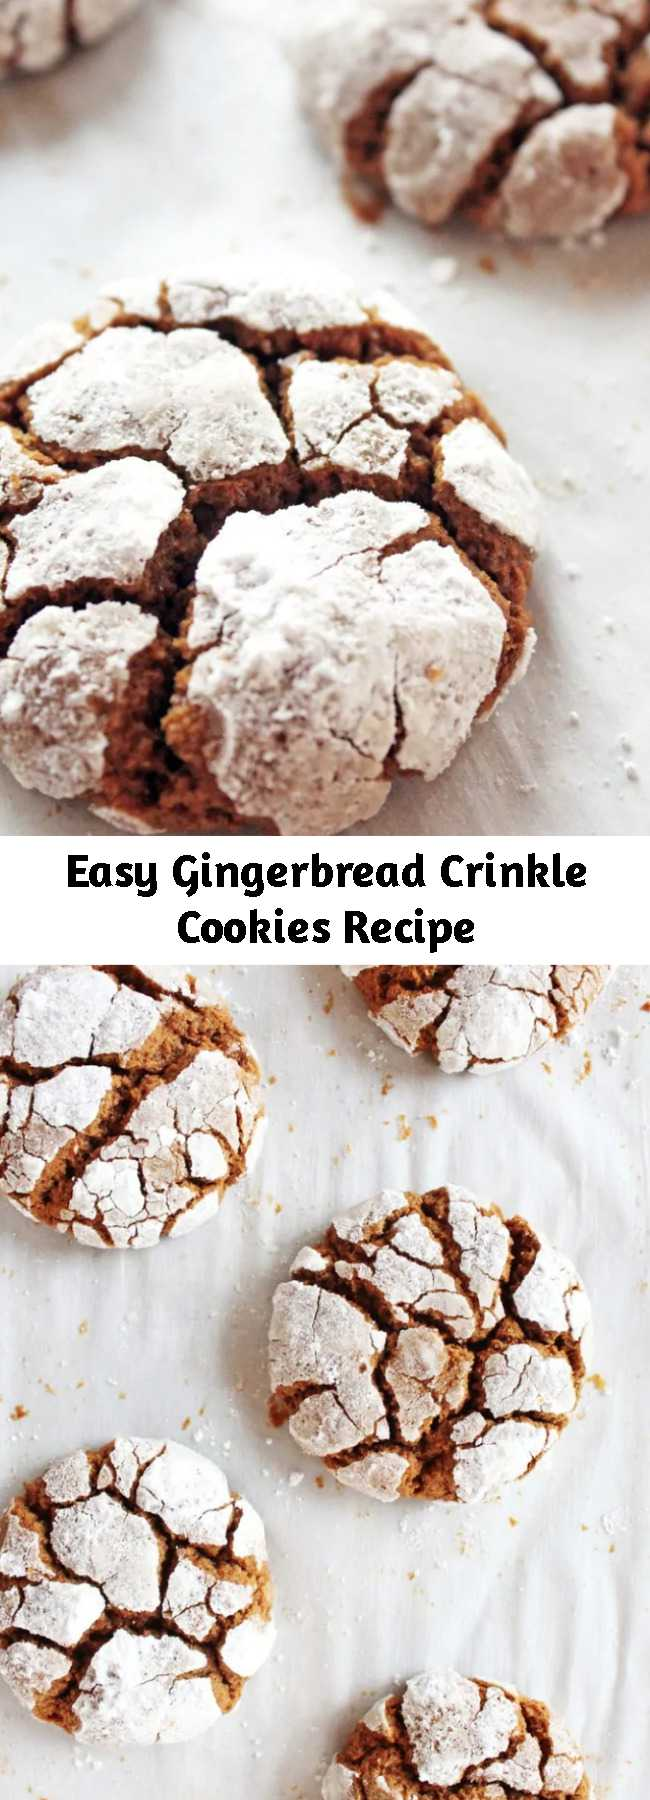 Easy Gingerbread Crinkle Cookies Recipe - Gingerbread crinkle cookies are a must-try during the holidays. They are chewy, full of ginger flavor and coated in sugar with exposed cookie cracks.